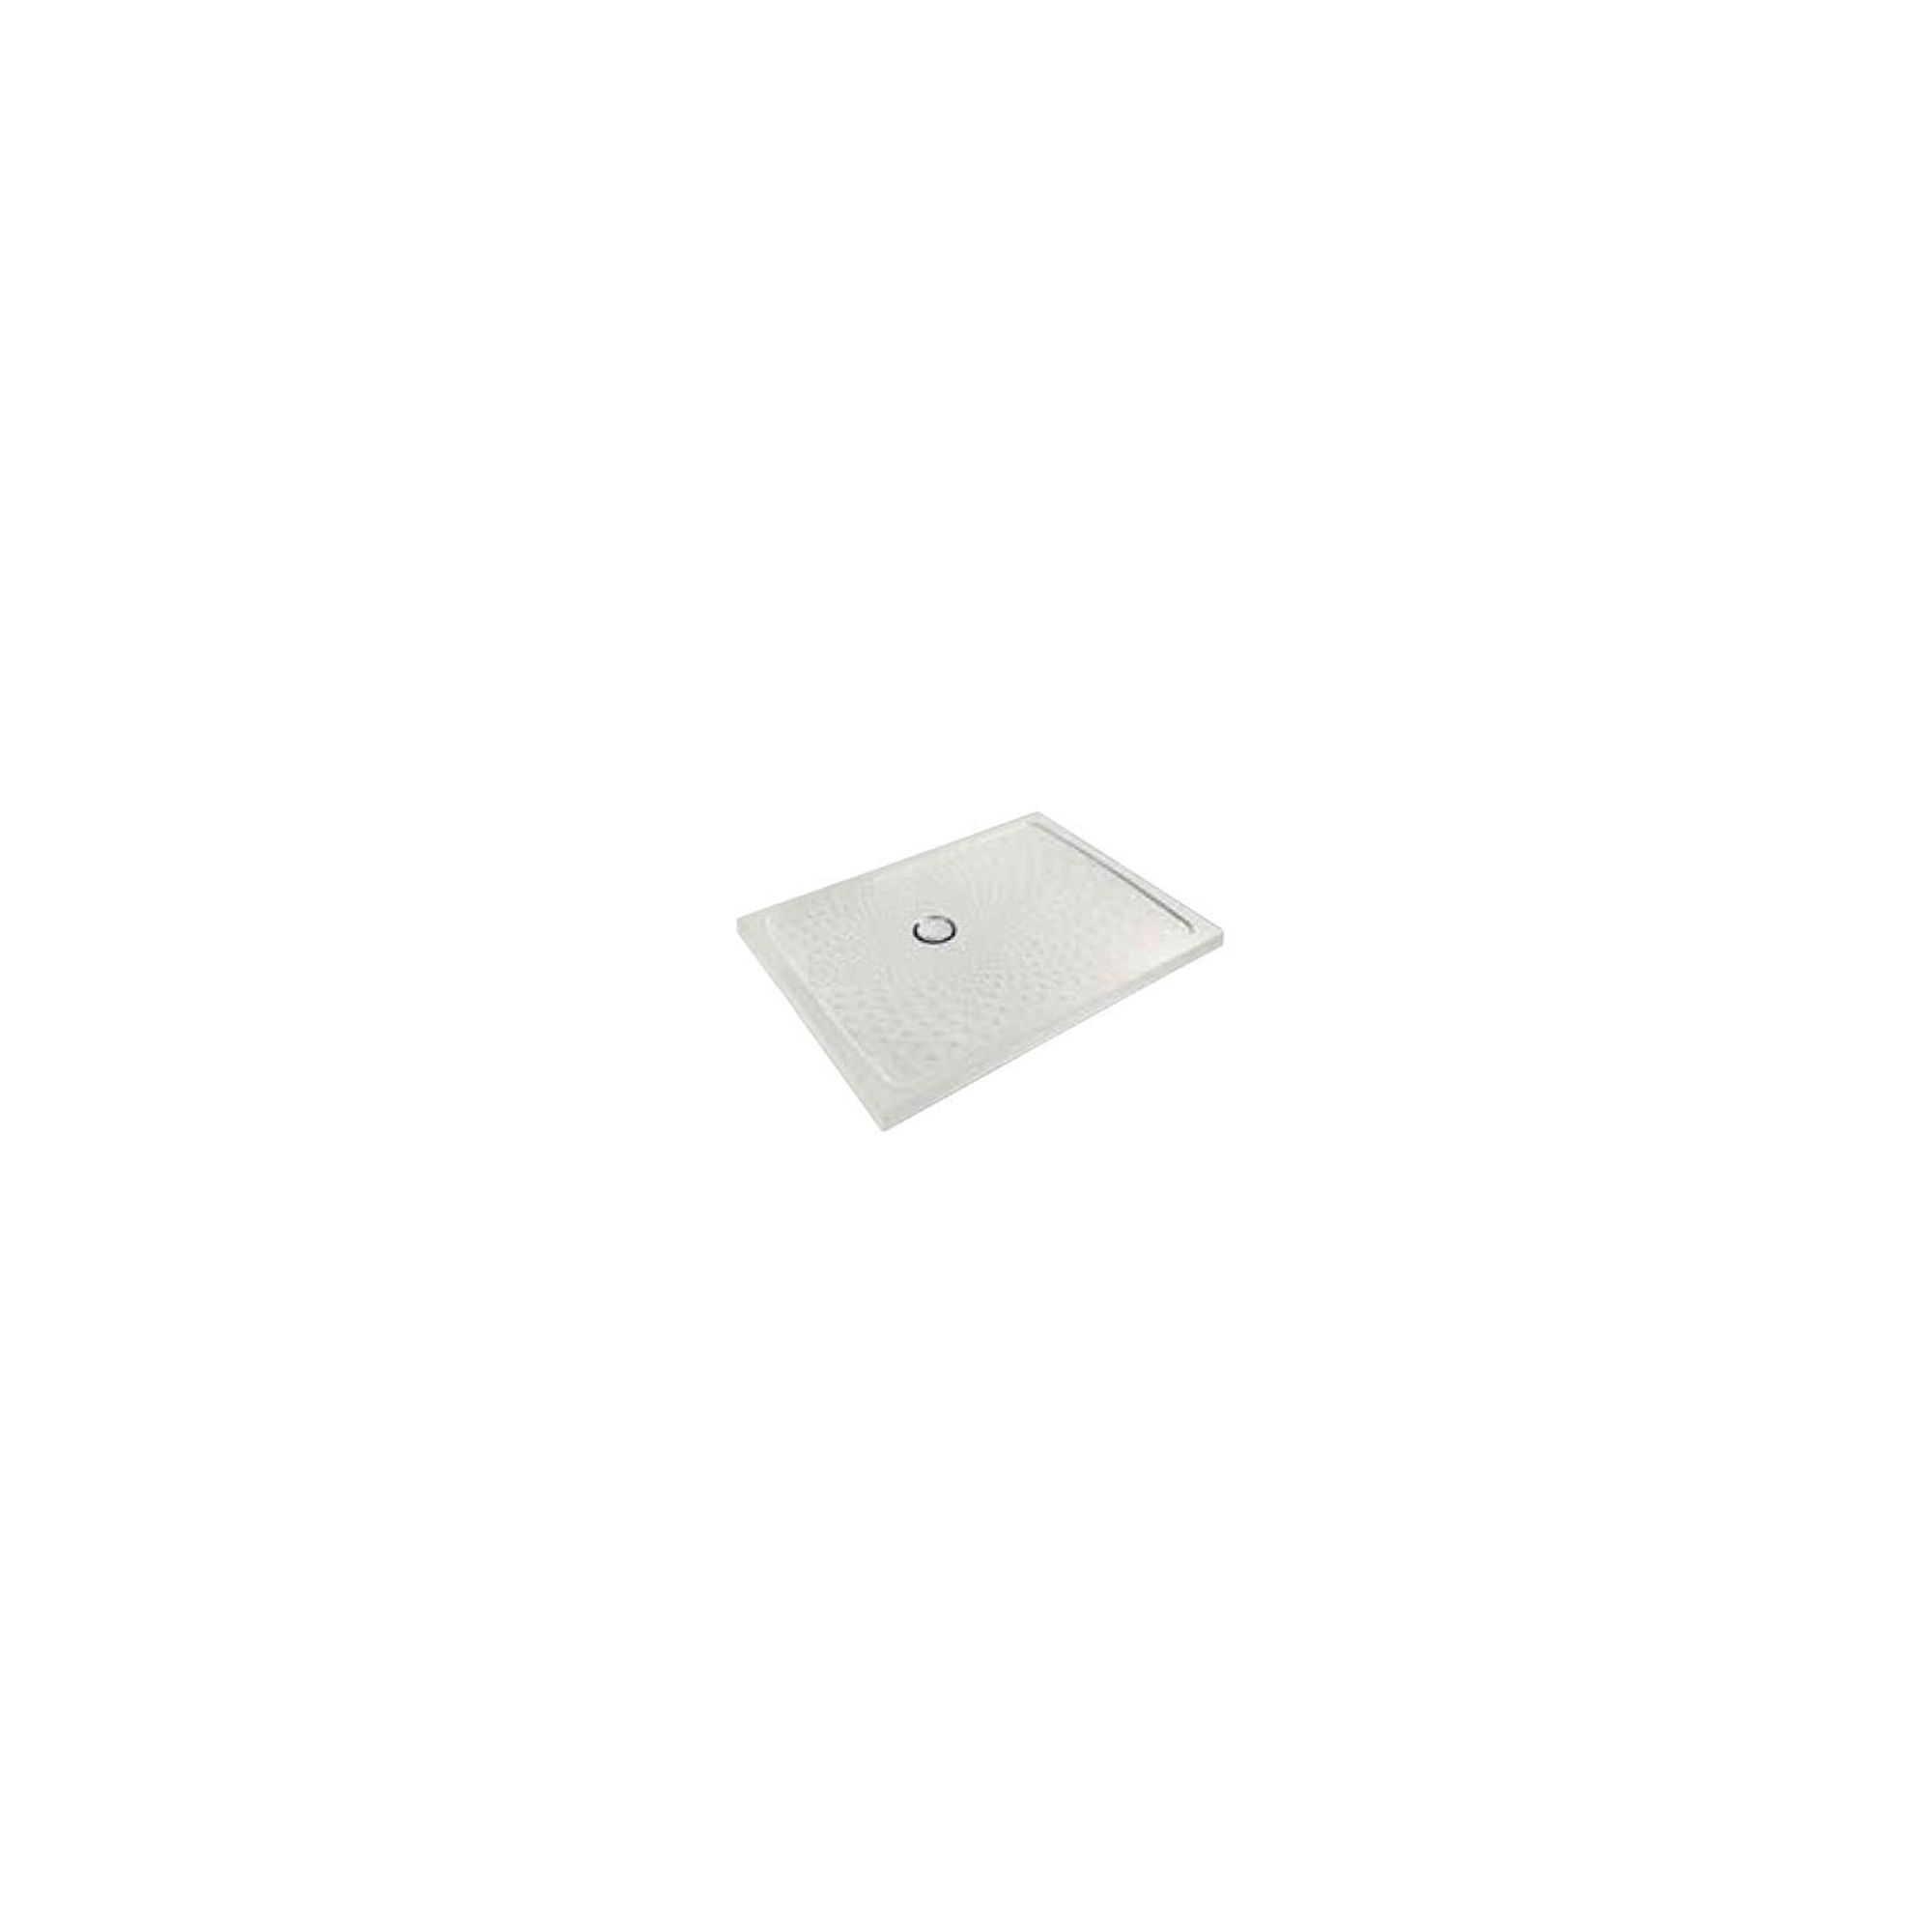 Impey Slimline 35 Showertray 1200mm x 900mm at Tesco Direct